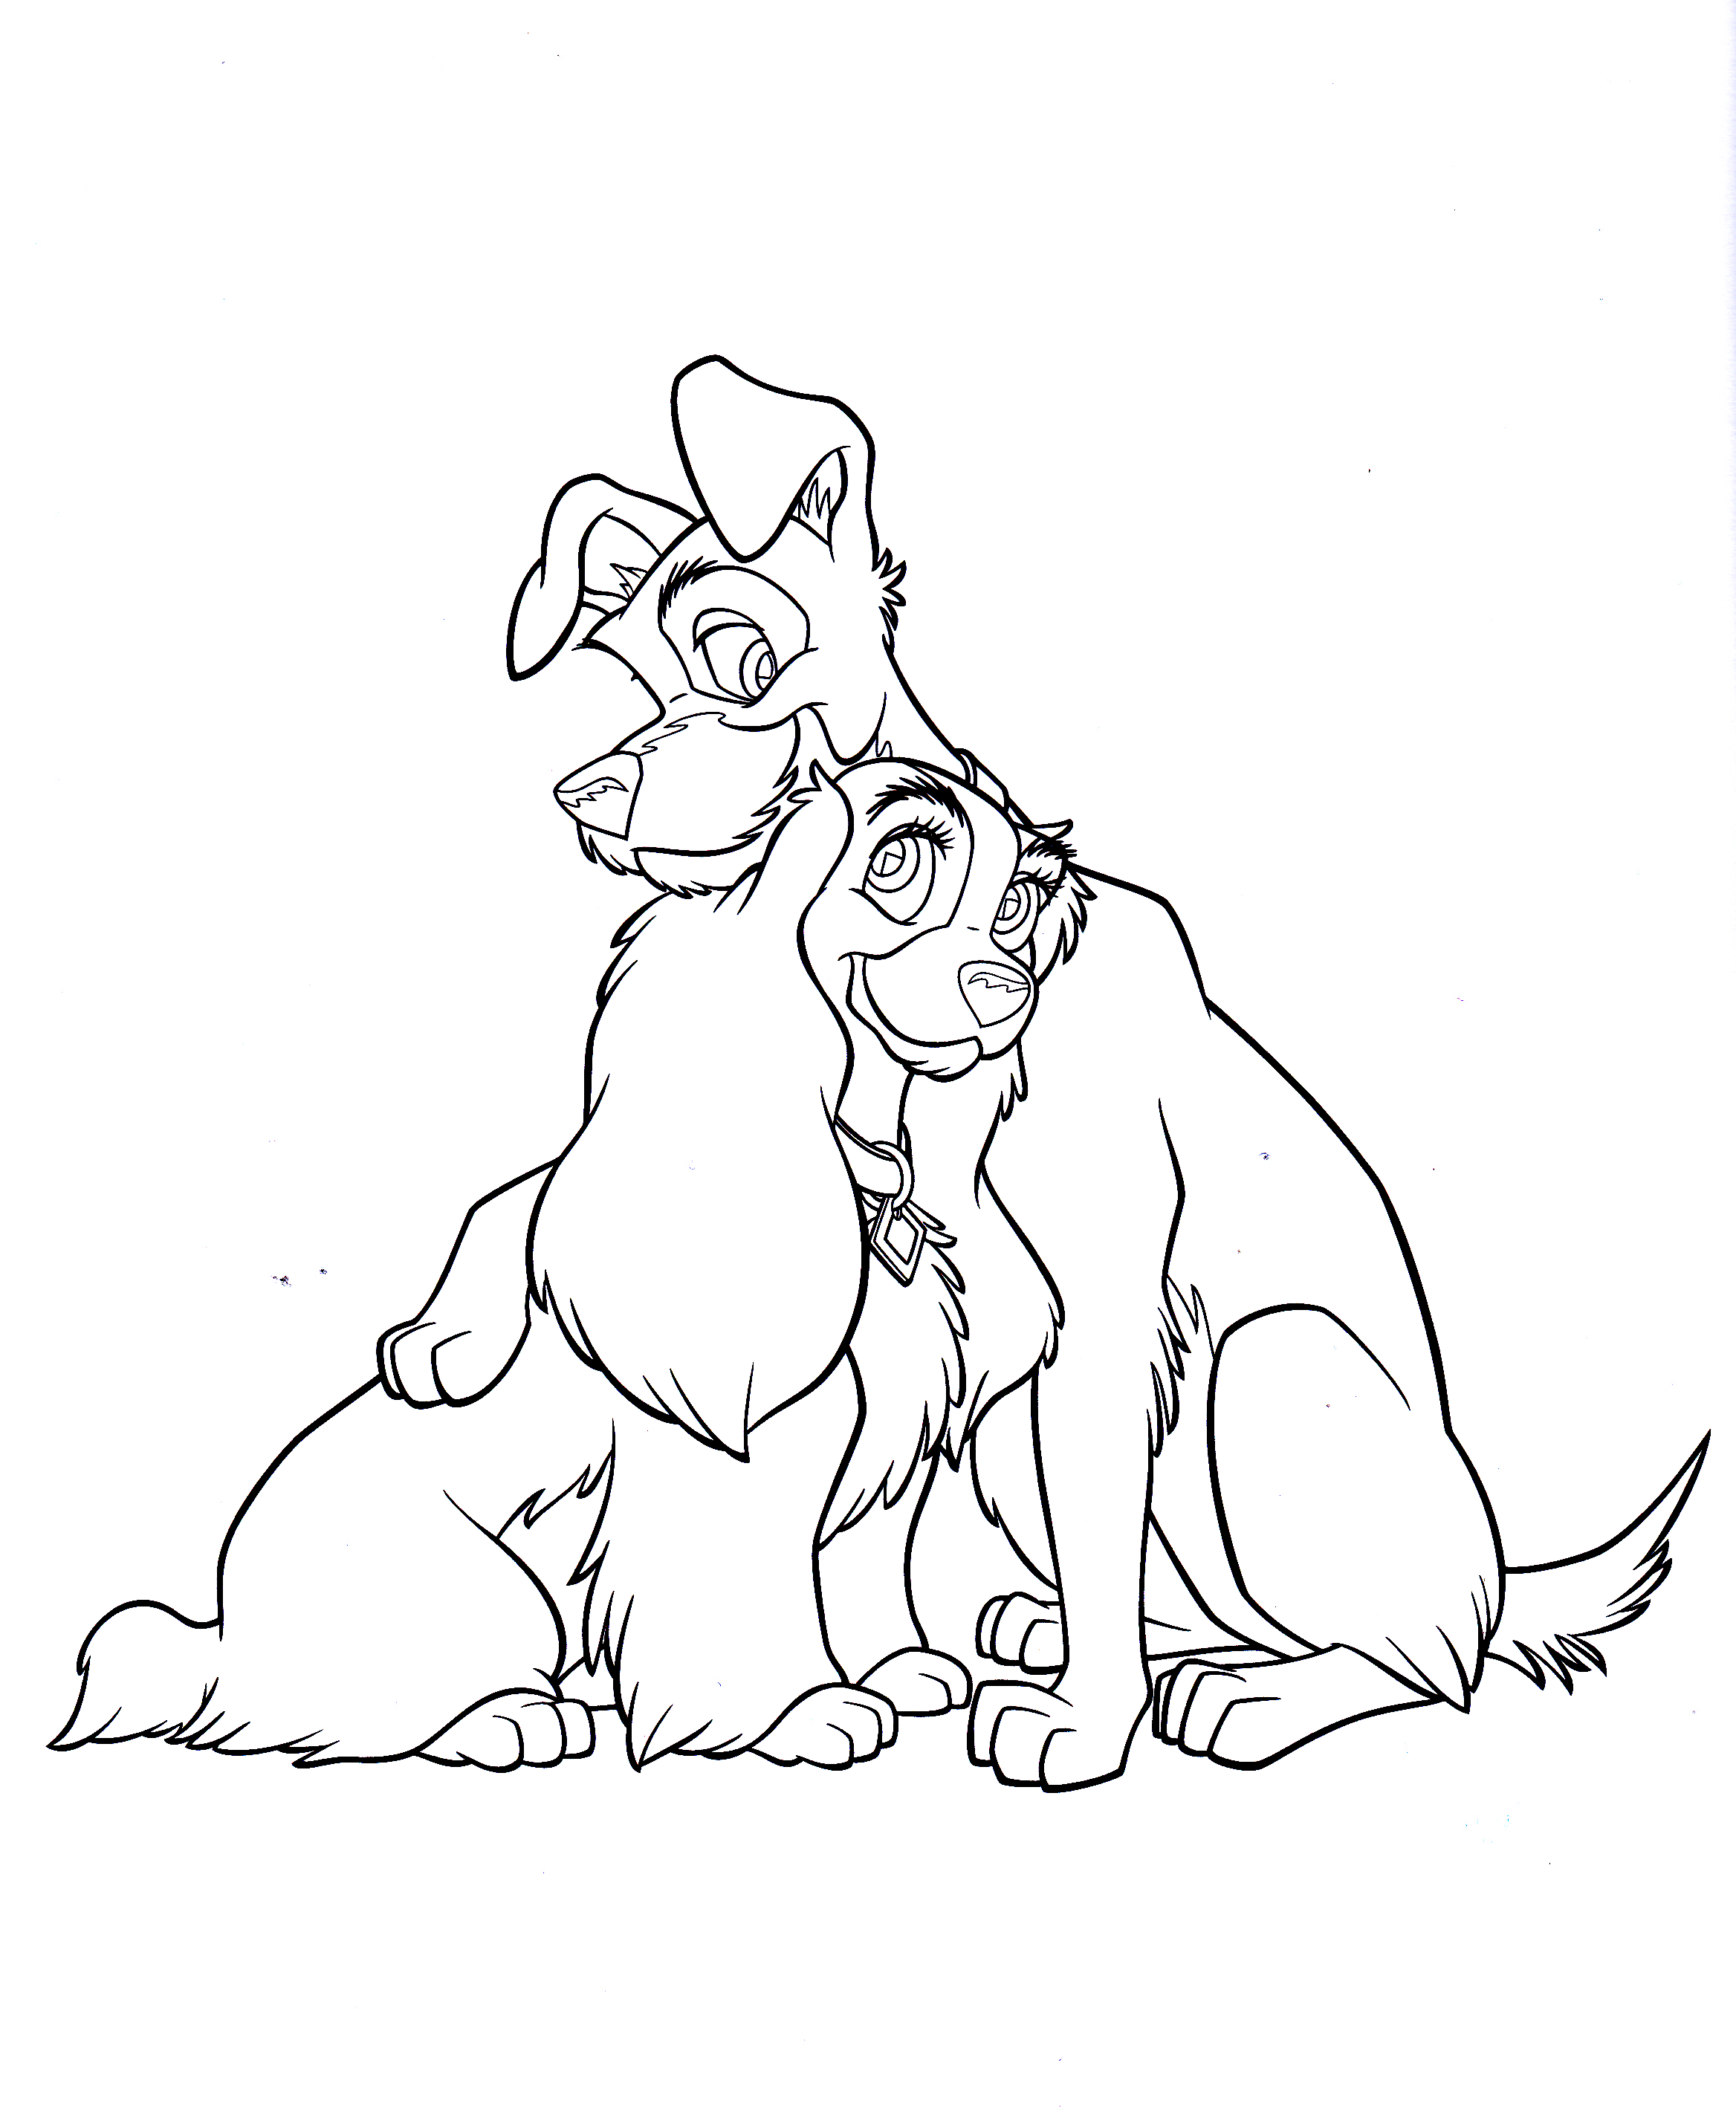 Disney Coloring Pages Lady And The Tramp : Walt disney characters images coloring pages